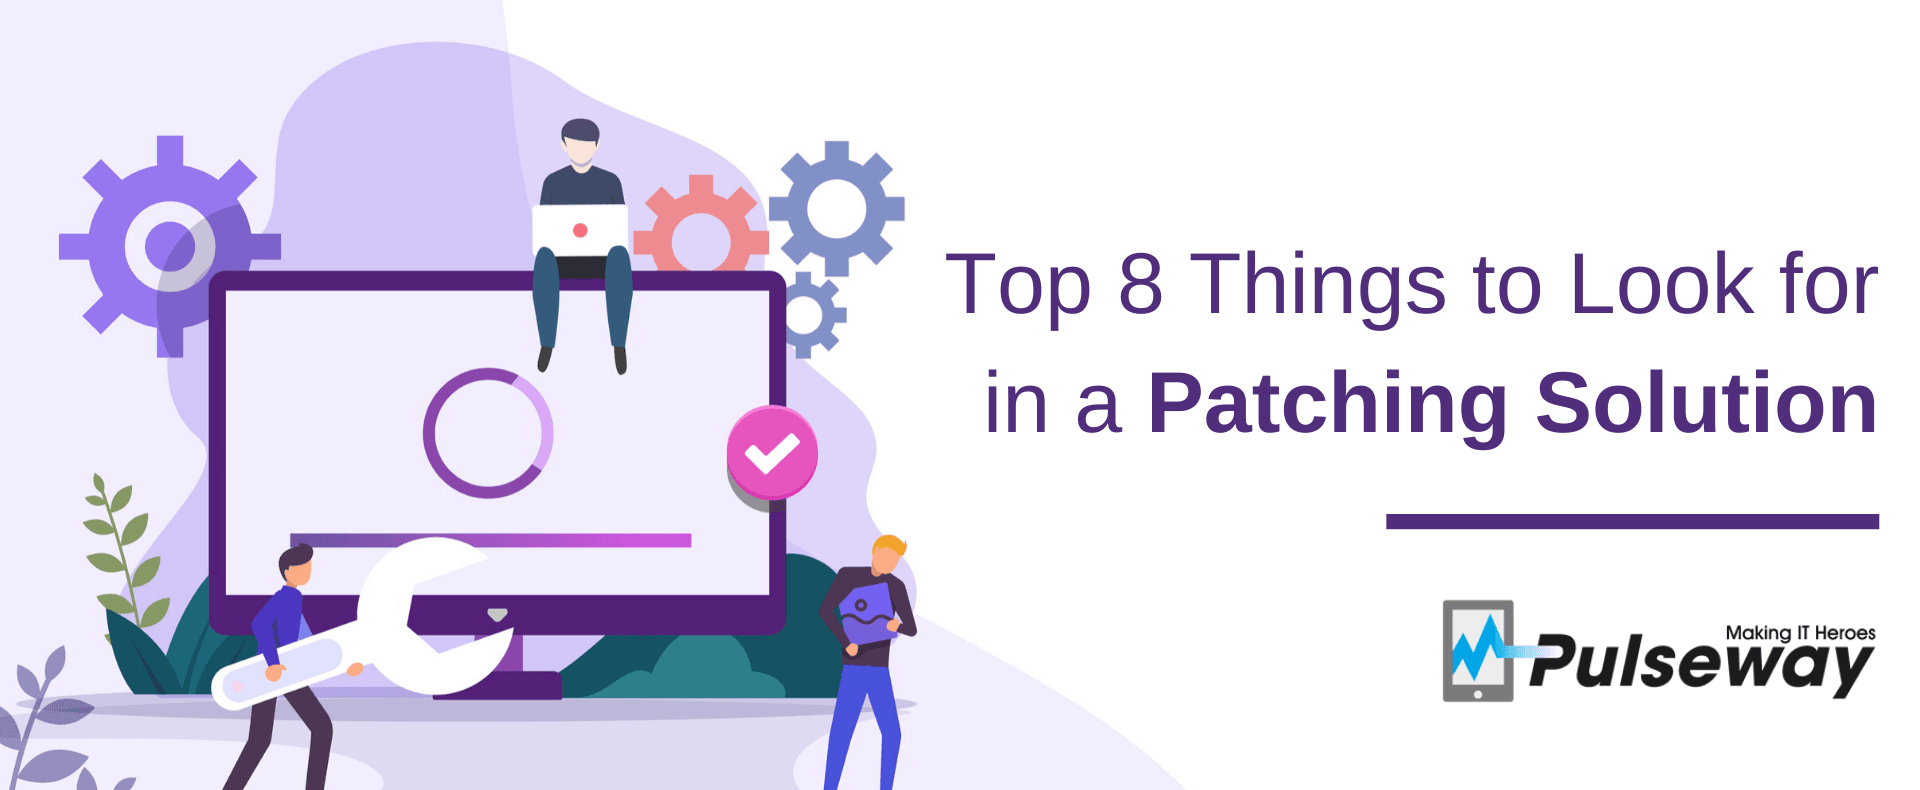 Top 8 Things to Look for in a Patching Solution